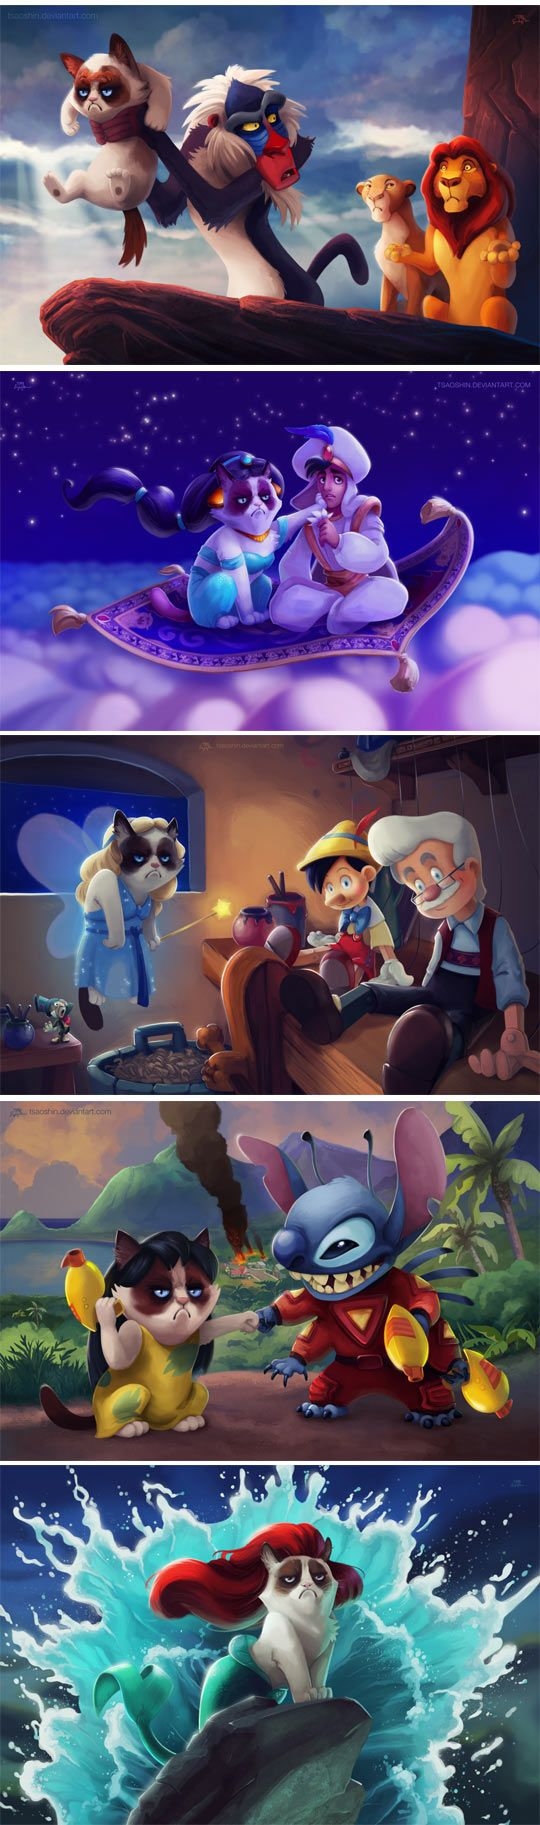 If grumpy cat was the star of disney movies disney love - The lion in the living room netflix ...